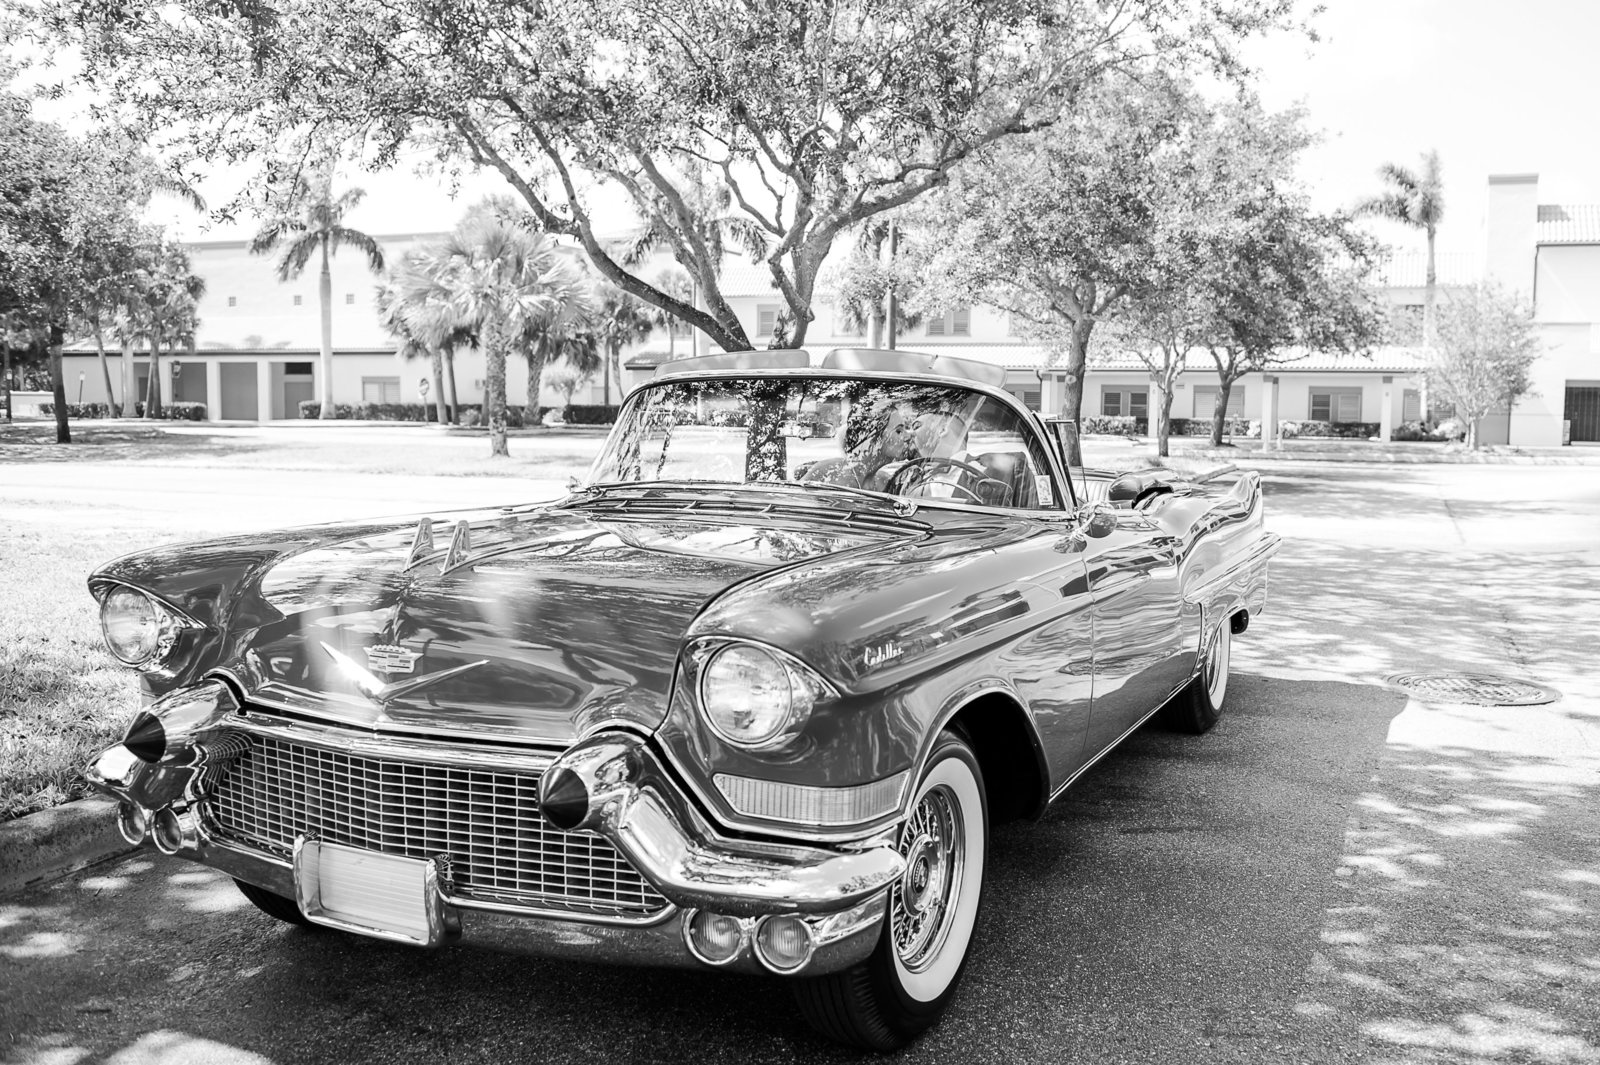 Bride and Groom Classic Car - Country Club at Mirasol Wedding - Palm Beach Wedding Photography by Palm Beach Photography, Inc.